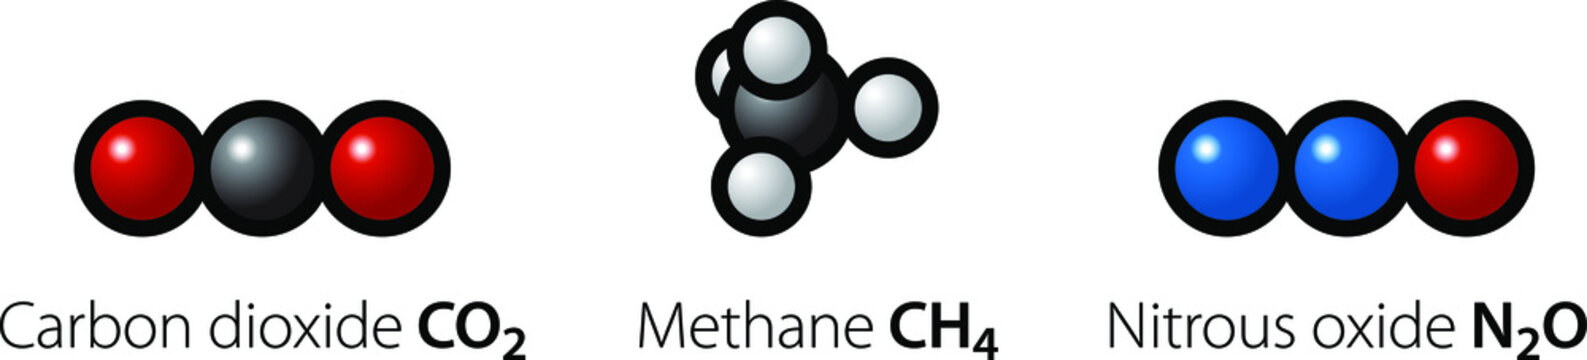 Molecules of the three most common greenhouse gases: carbon dioxide, methane and nitrous oxide.